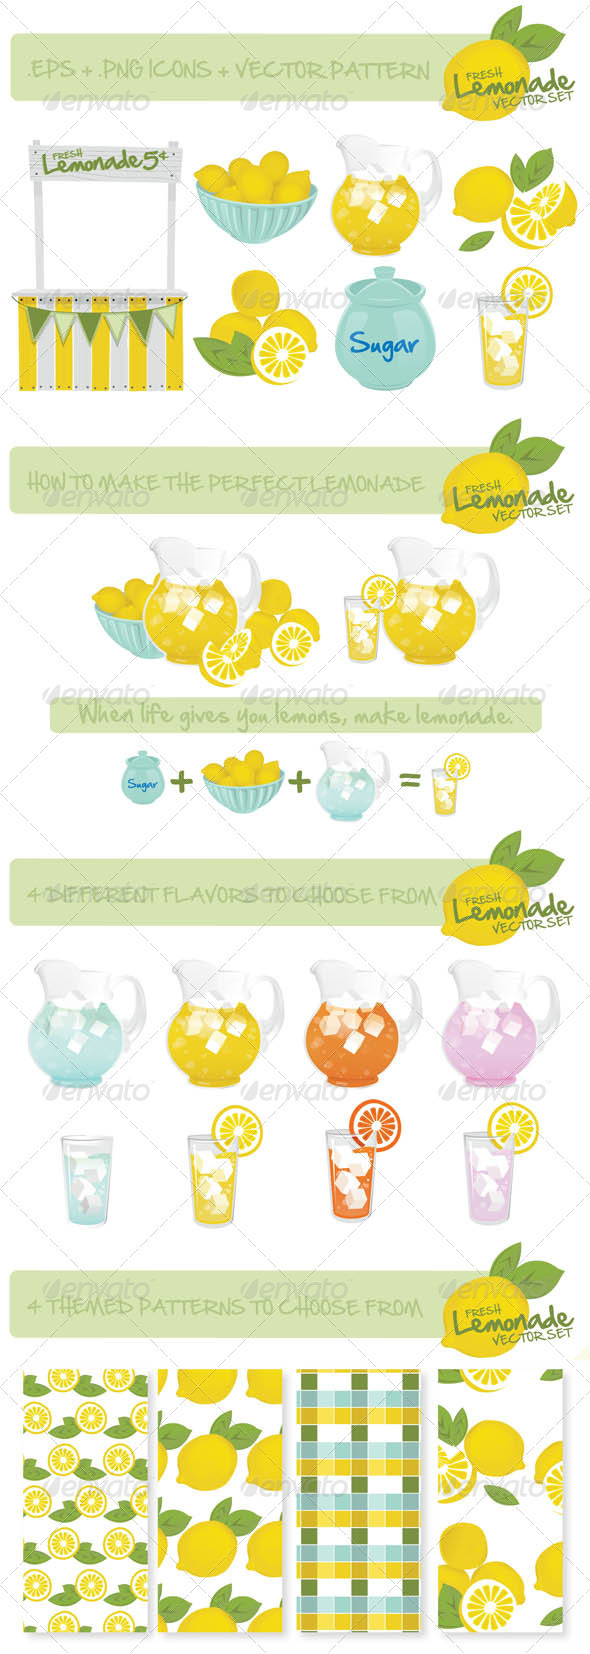 Lemonade's Stand Vector Set - Food Objects